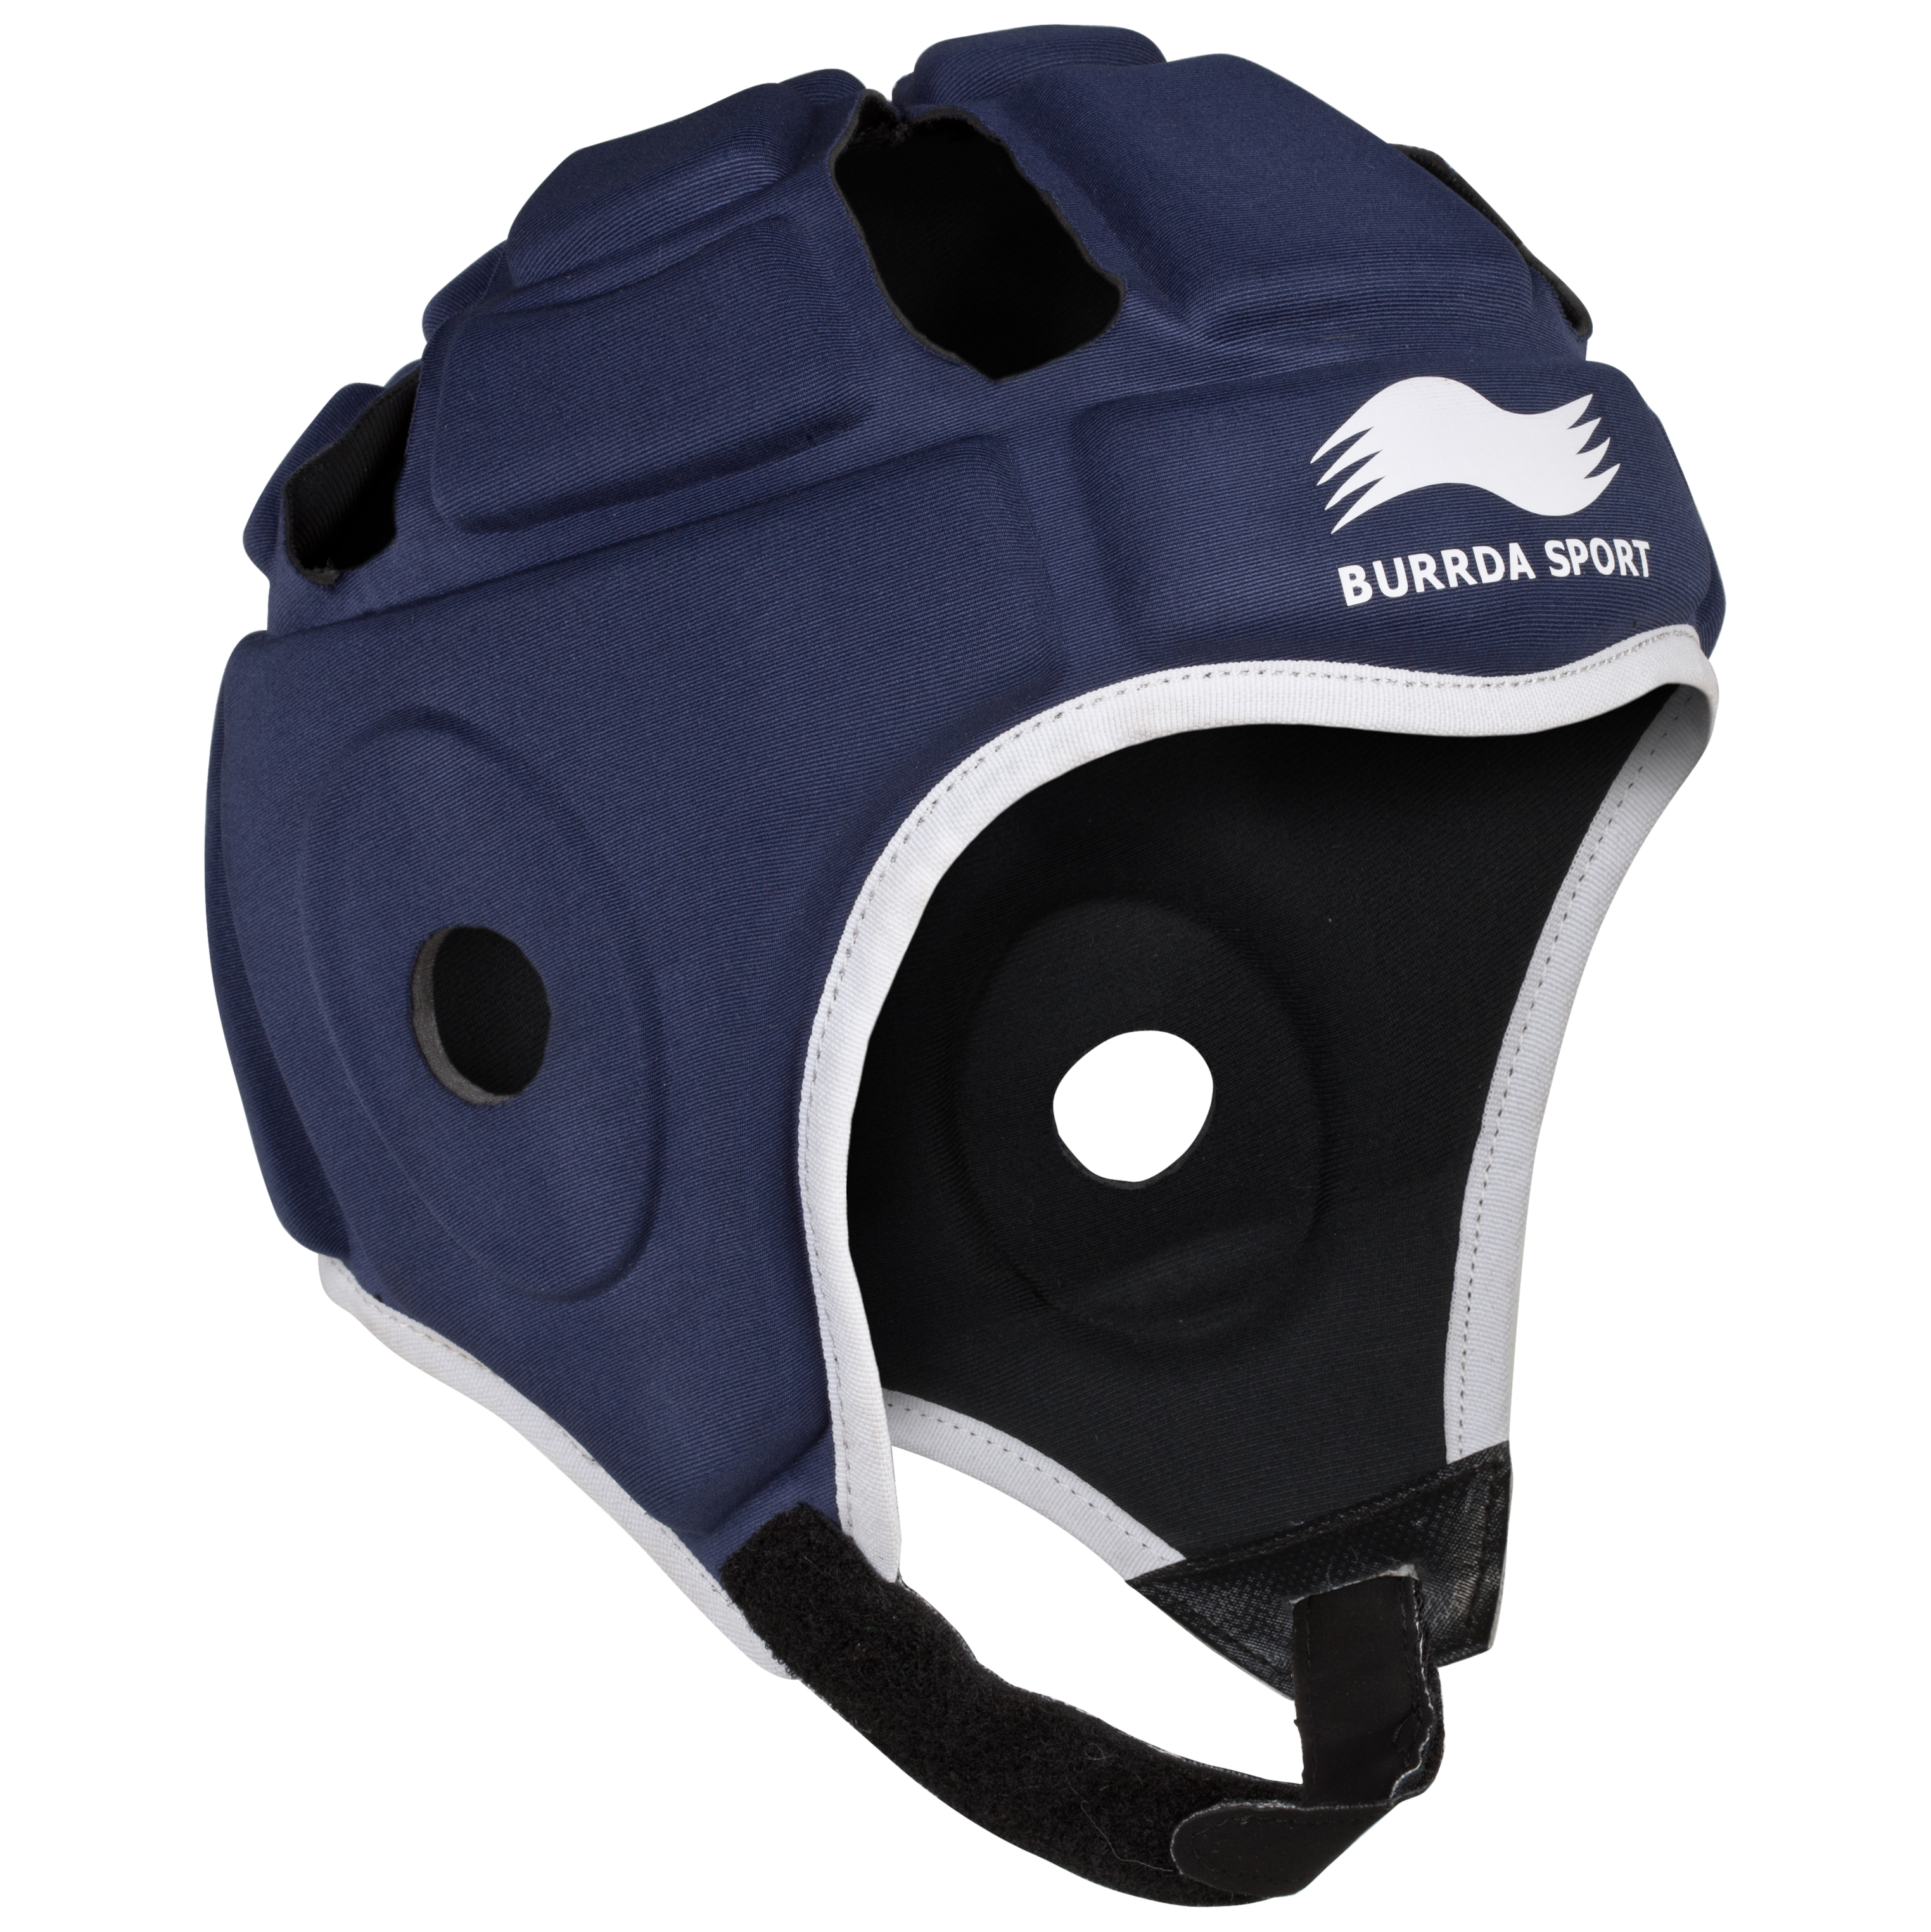 Burrda Sport Rugby Tech Headguard - Navy